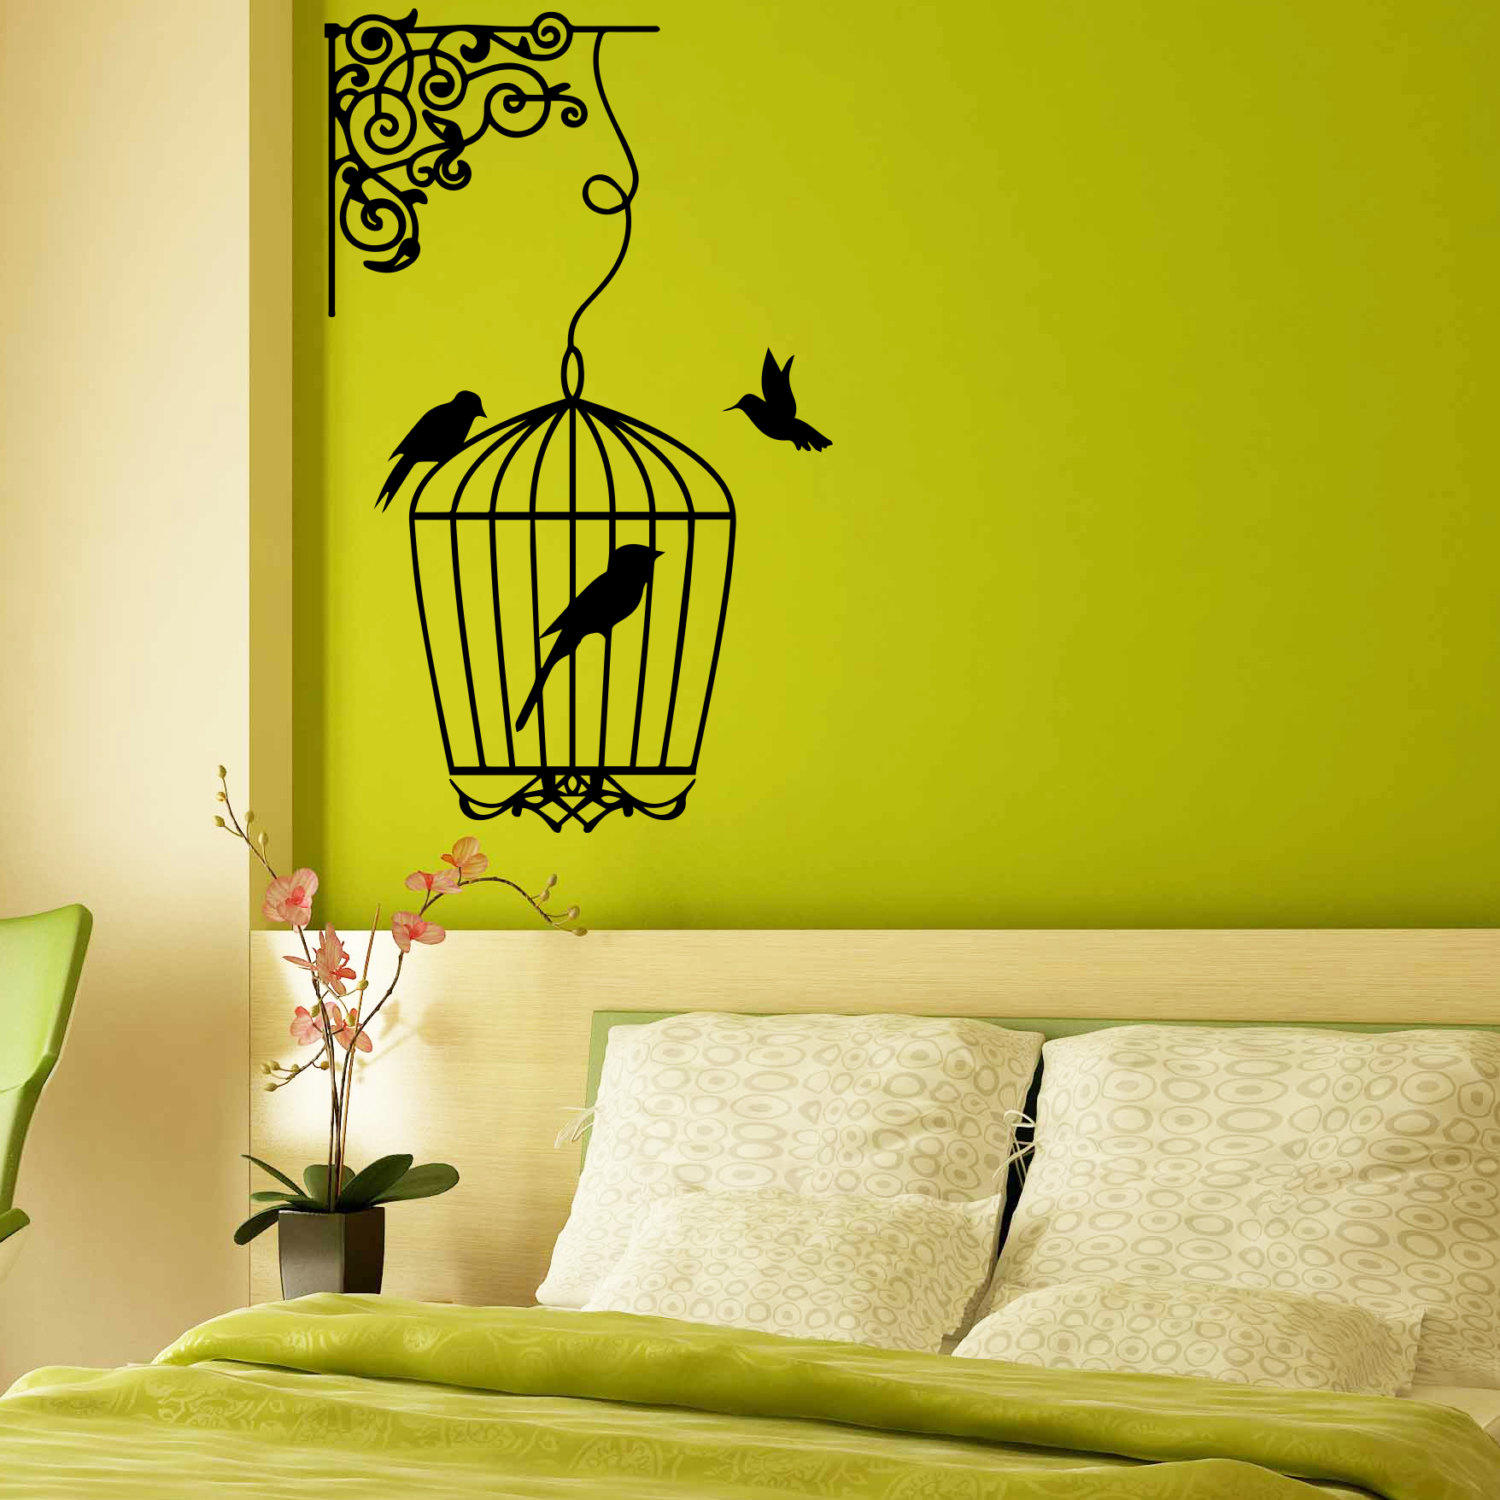 Wall Decal Bird Cages With Birds Design from DecalsfromDavid on